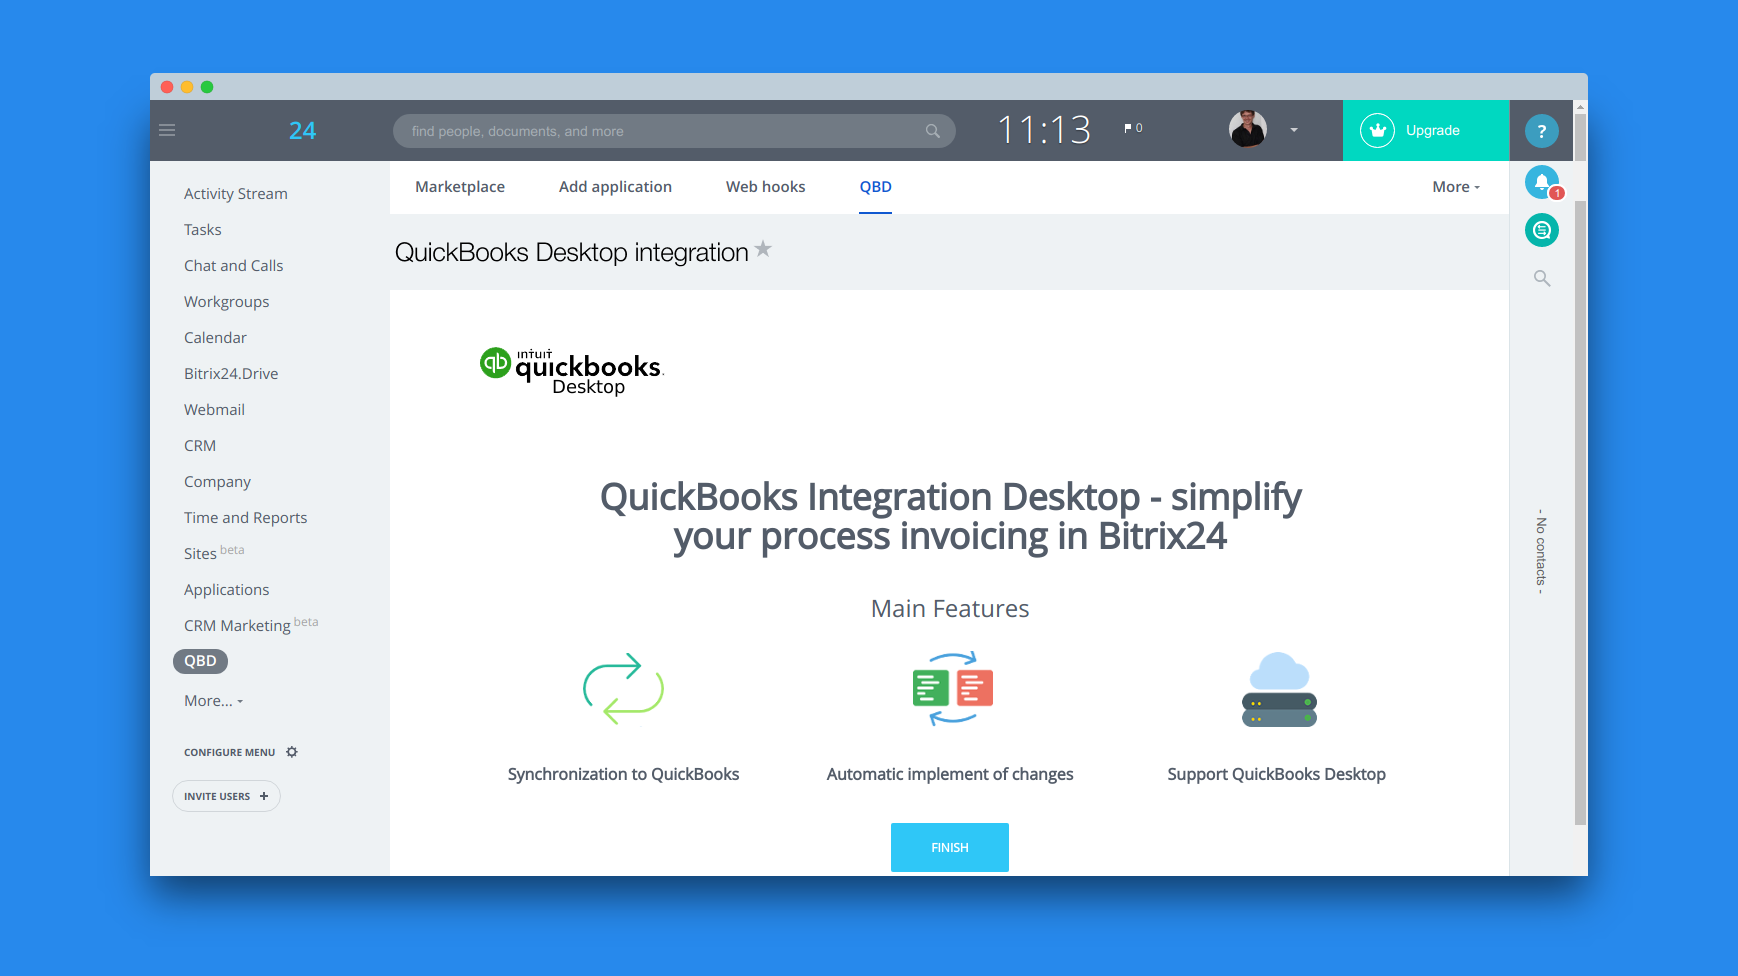 Bitrix24 now integrates with the desktop editions of QuickBooks